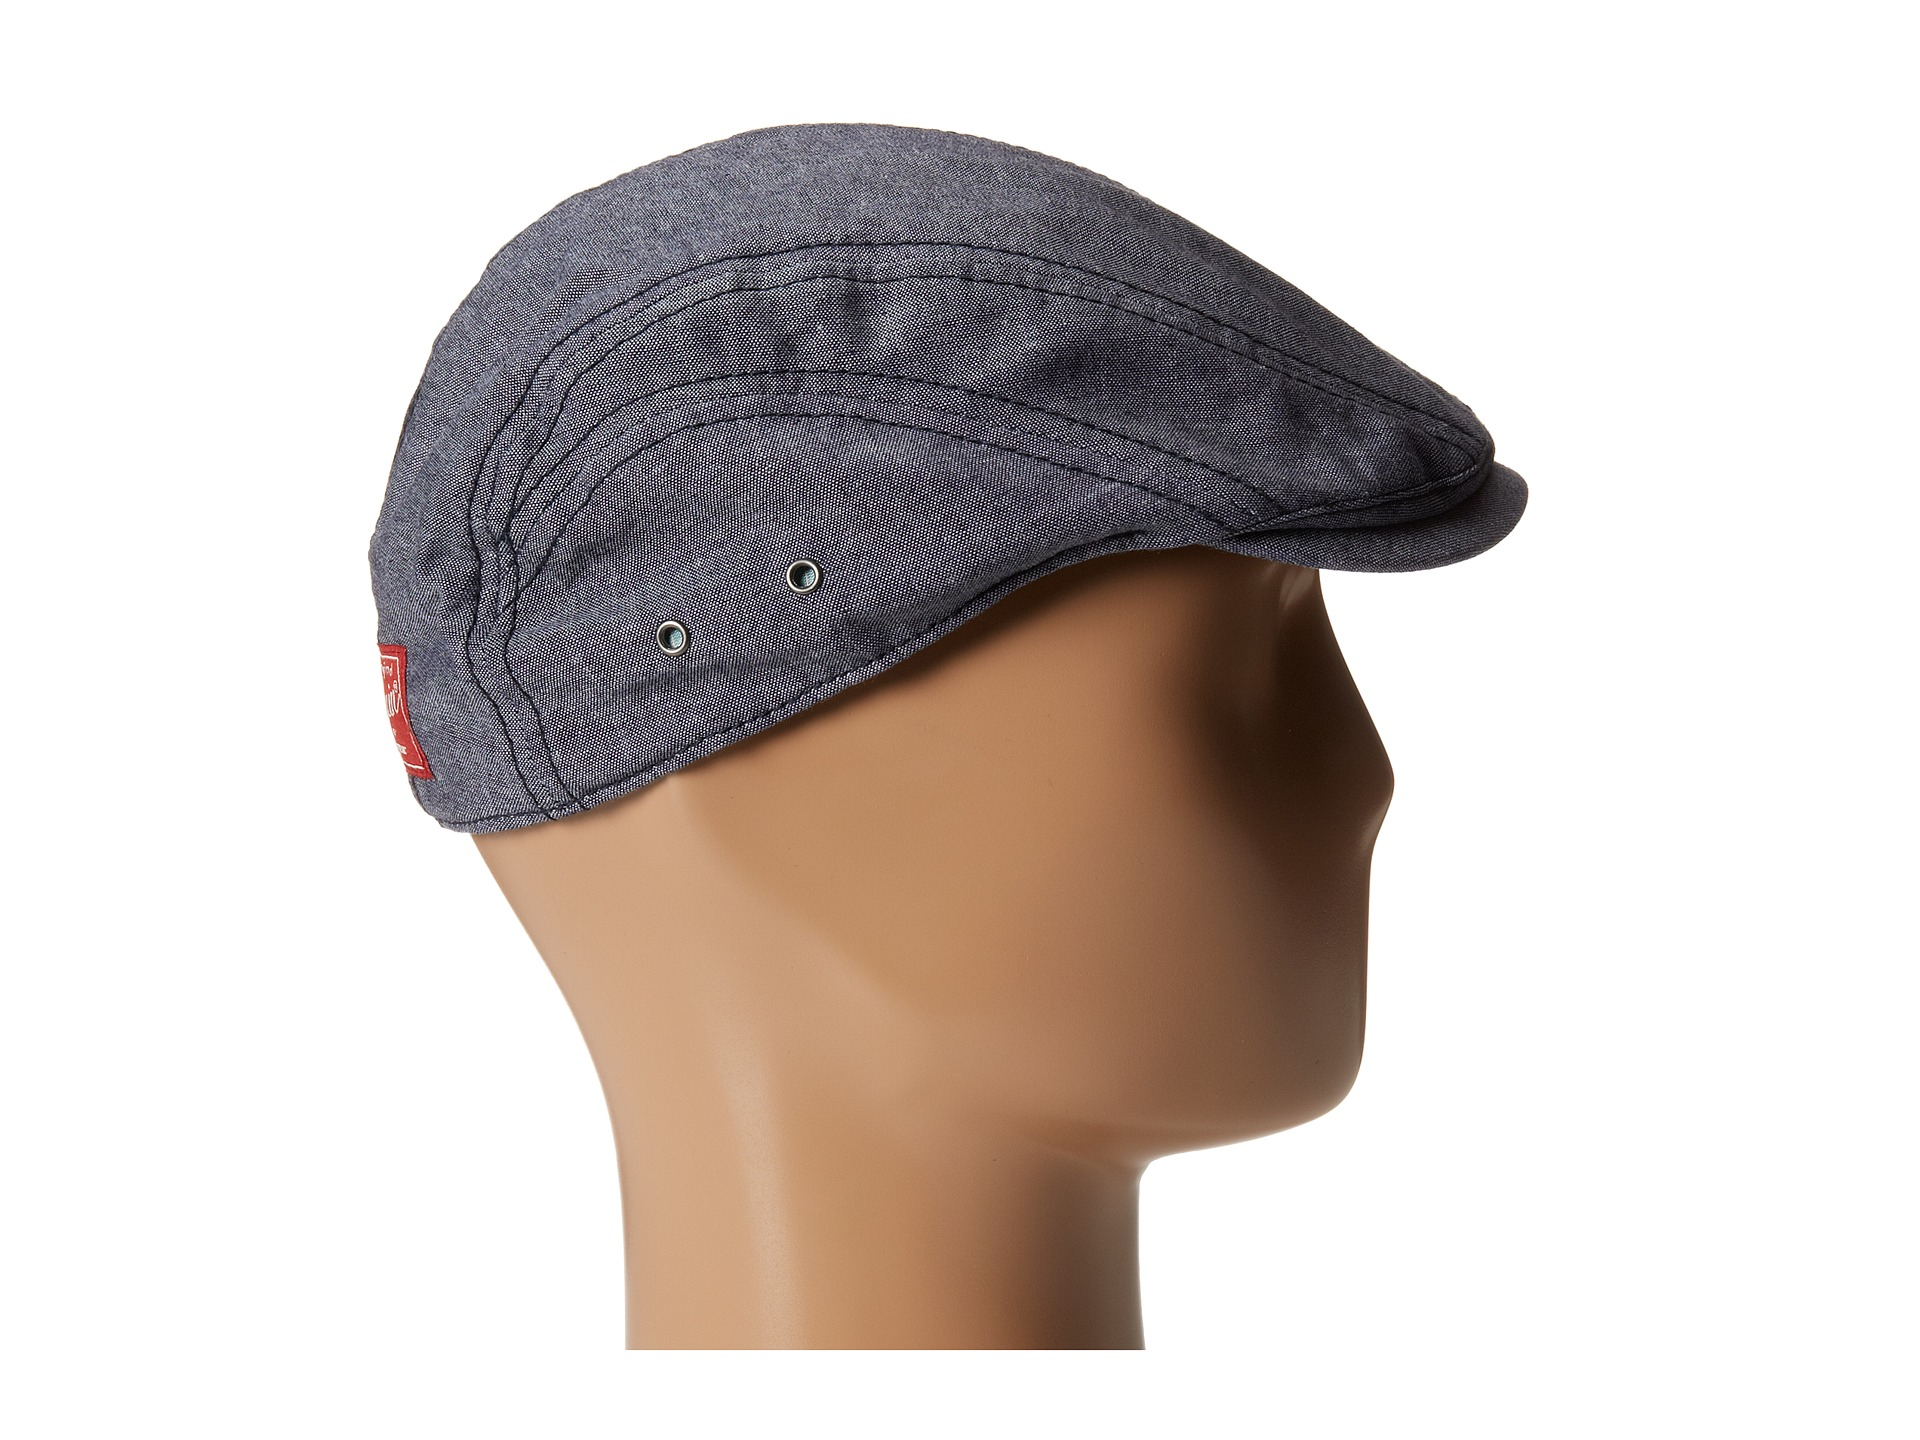 Lyst - Original Penguin Kennedy Solid Driving Cap in Blue for Men 80c6b7aa25f0